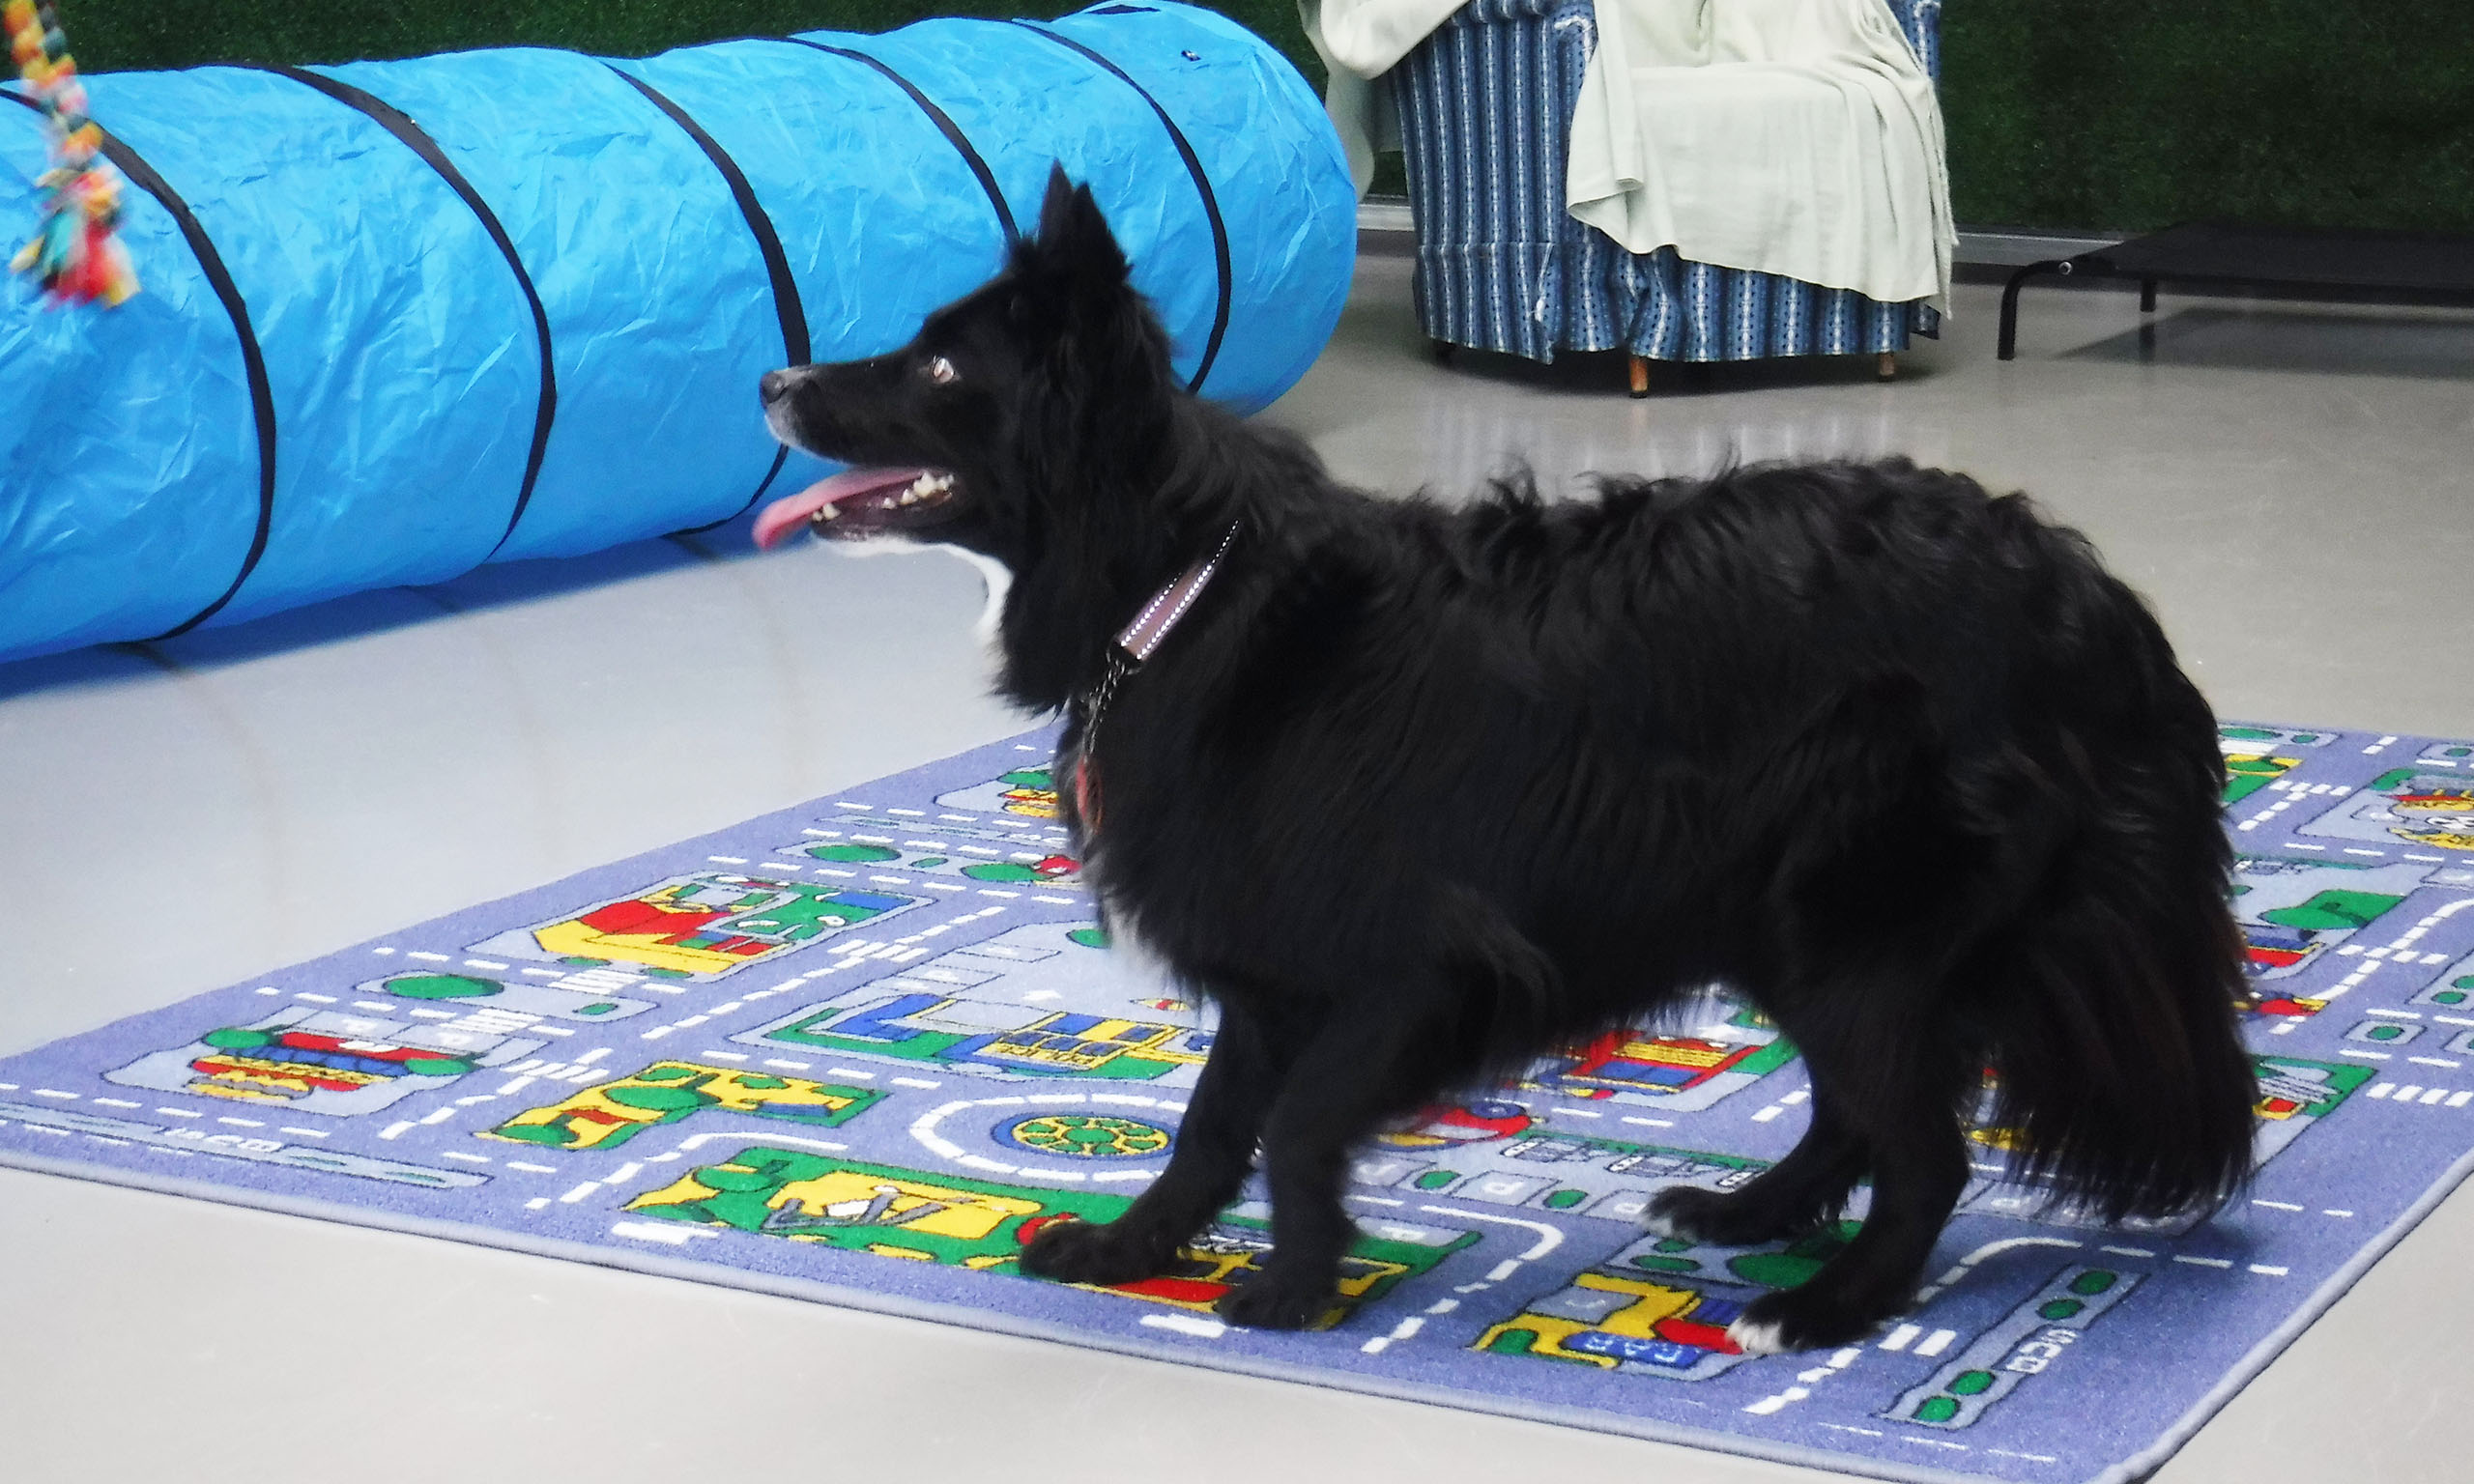 Dogs at play - K9 Day Care Centre